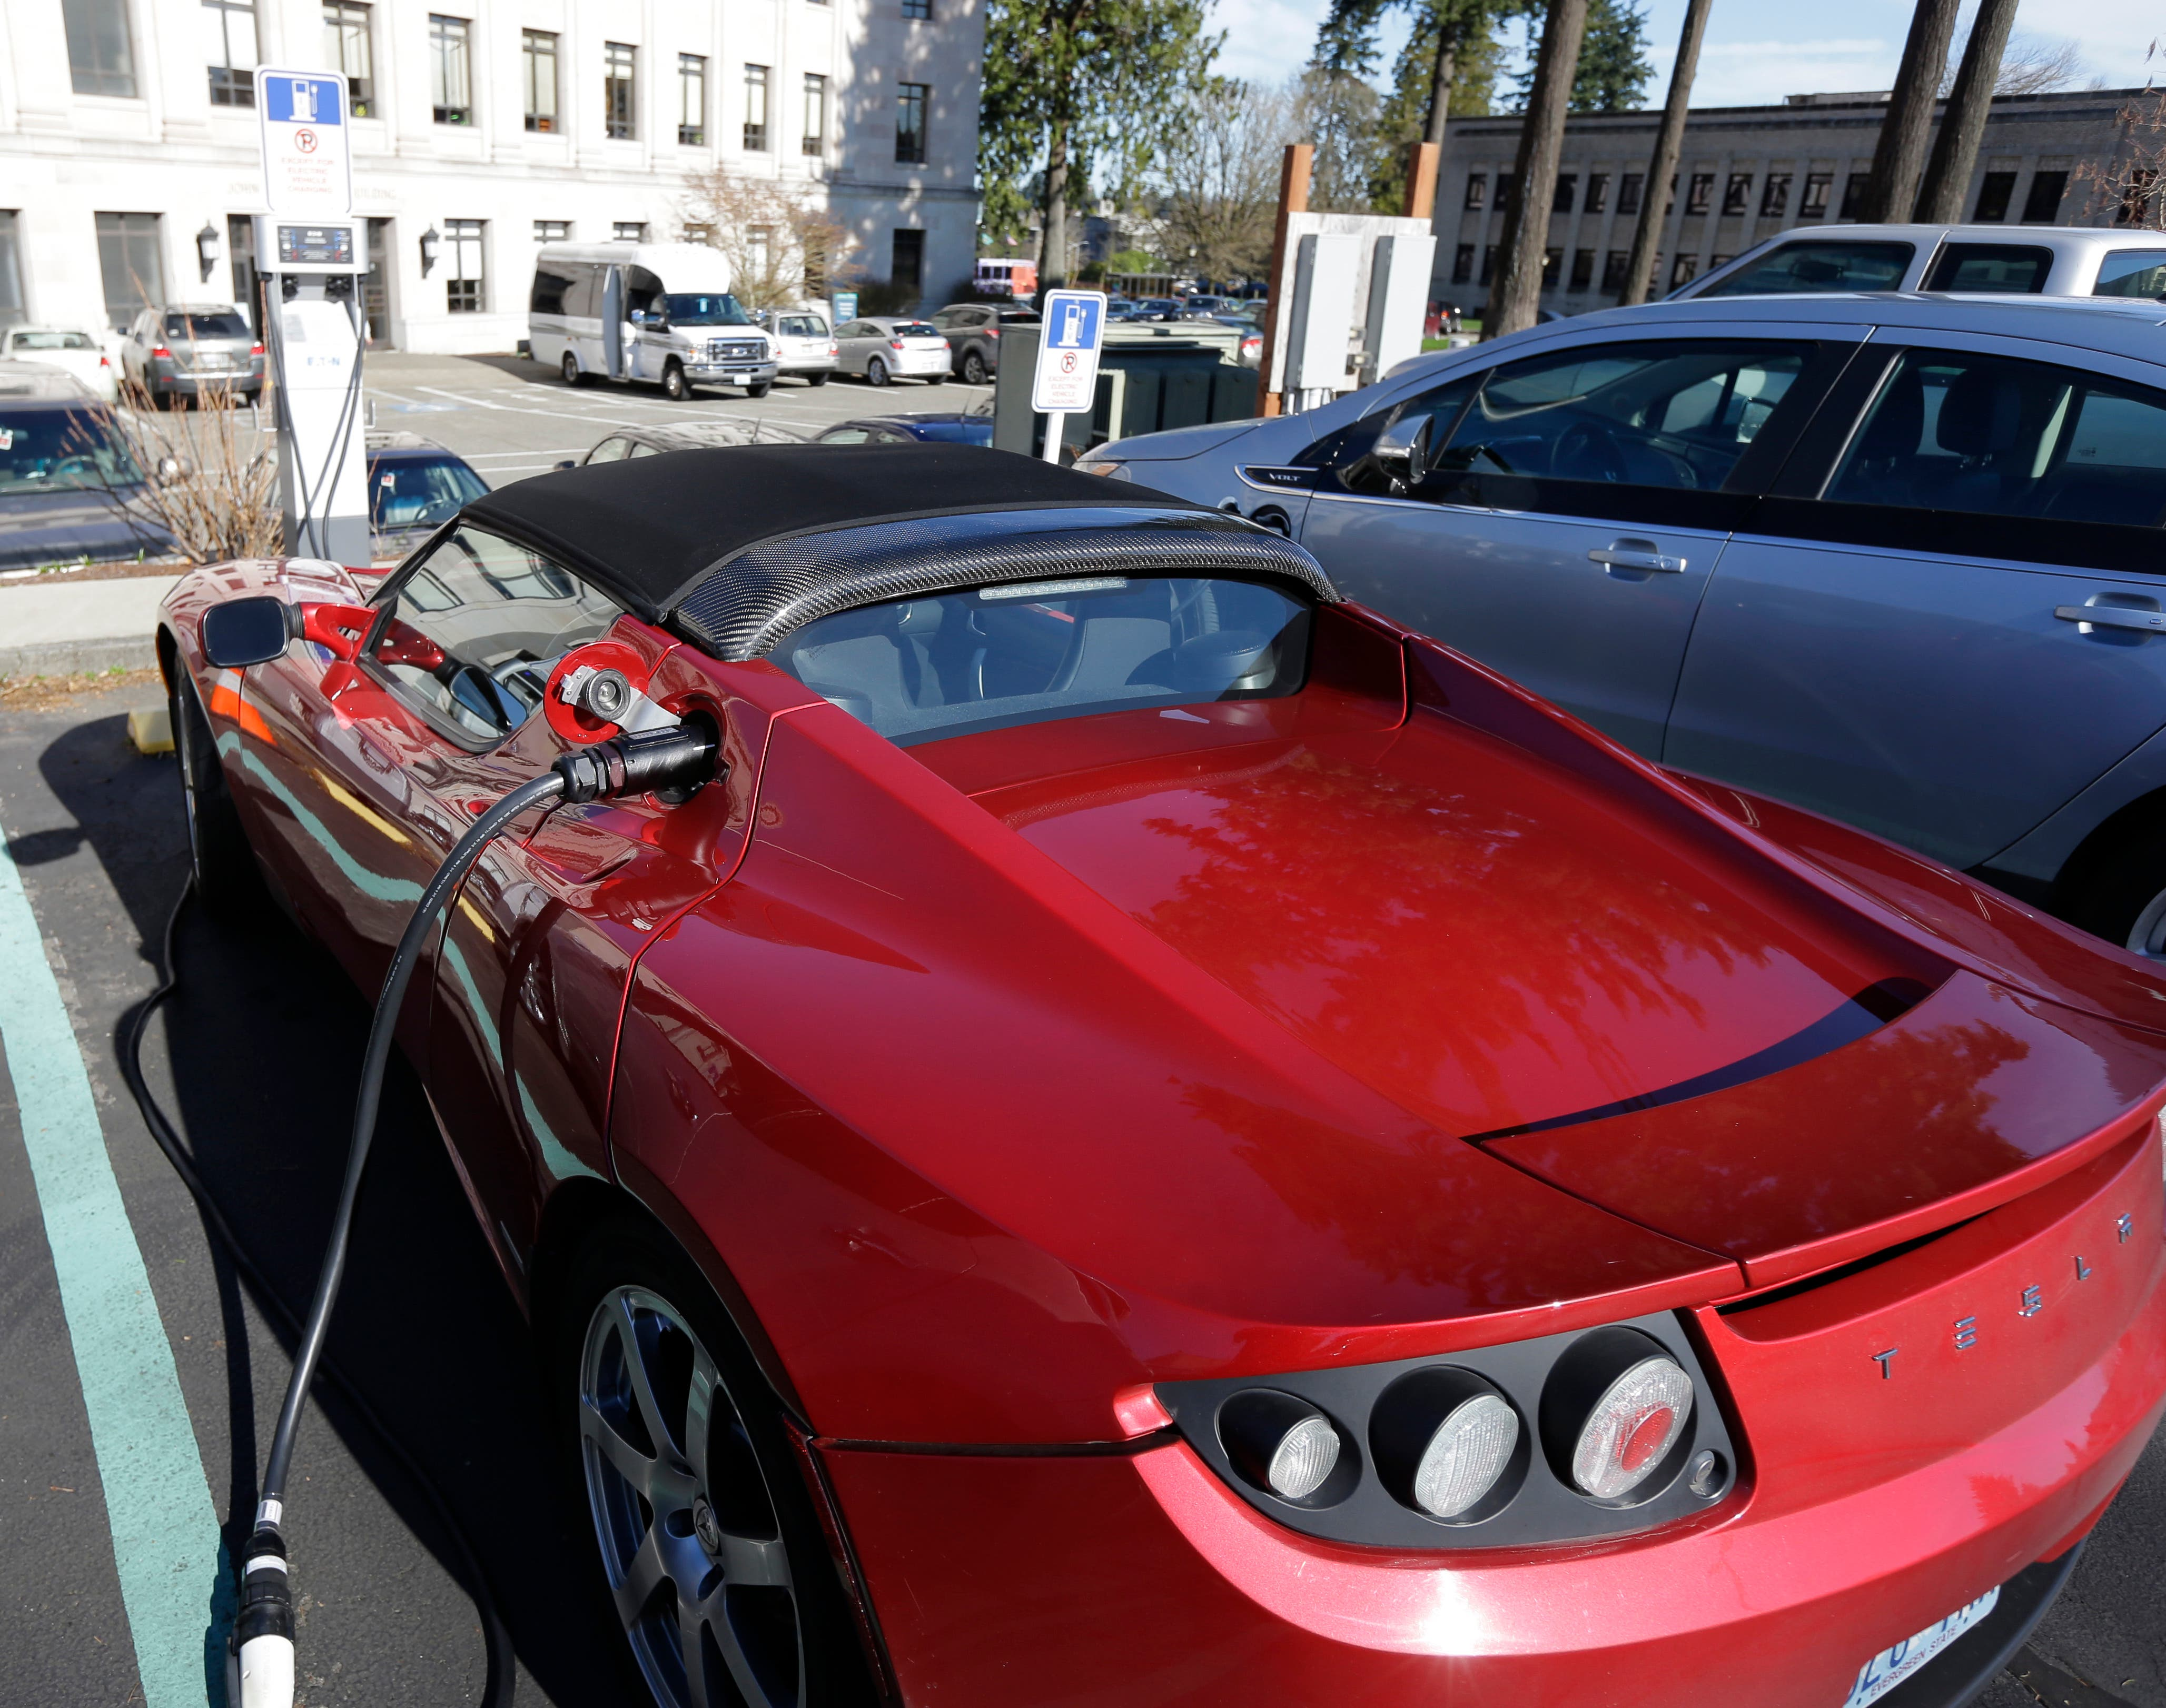 All-electric Tesla cars could soon become popular in the UAE due to rising fuel costs, one expert said (File photo AP)